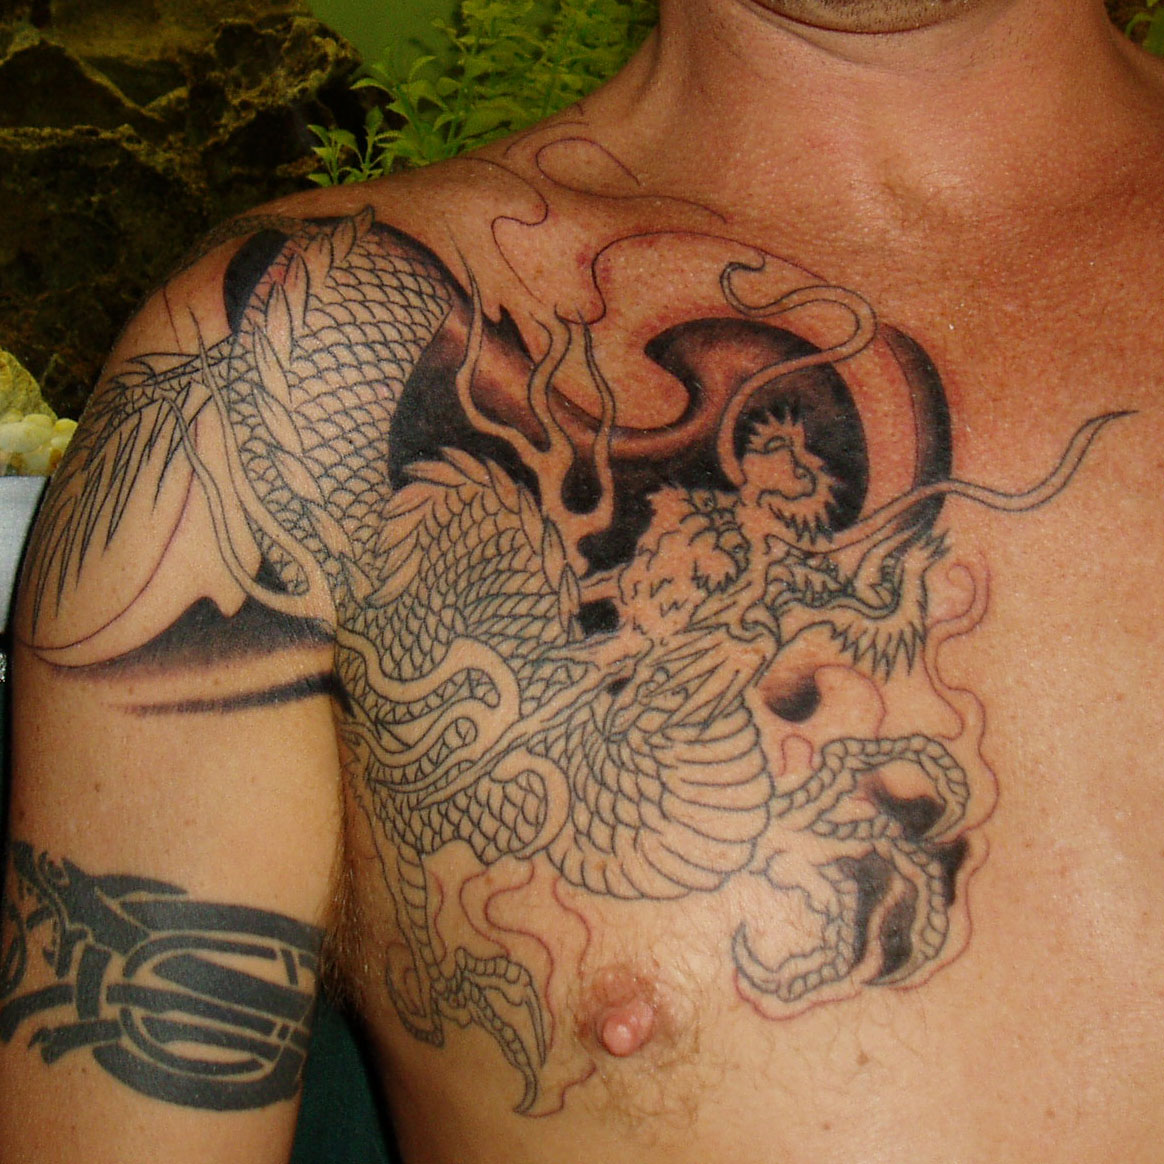 A Japanese koi fish tattoo